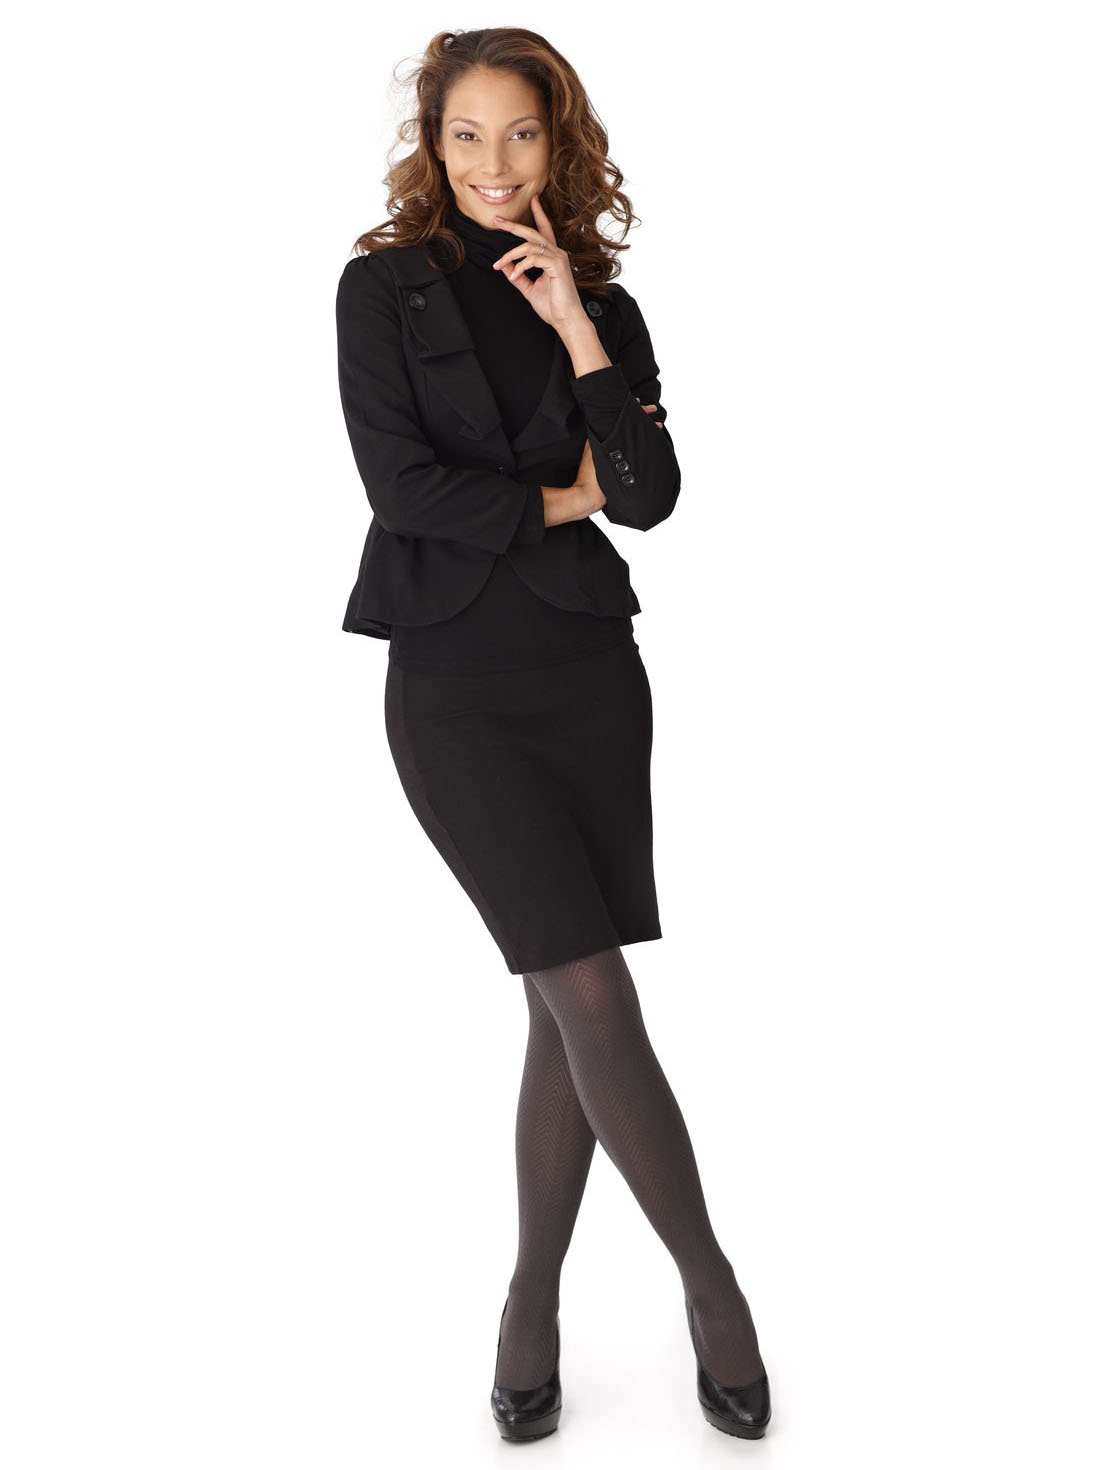 woman wearing all black outfit office work suit jacket skirt tights pumps